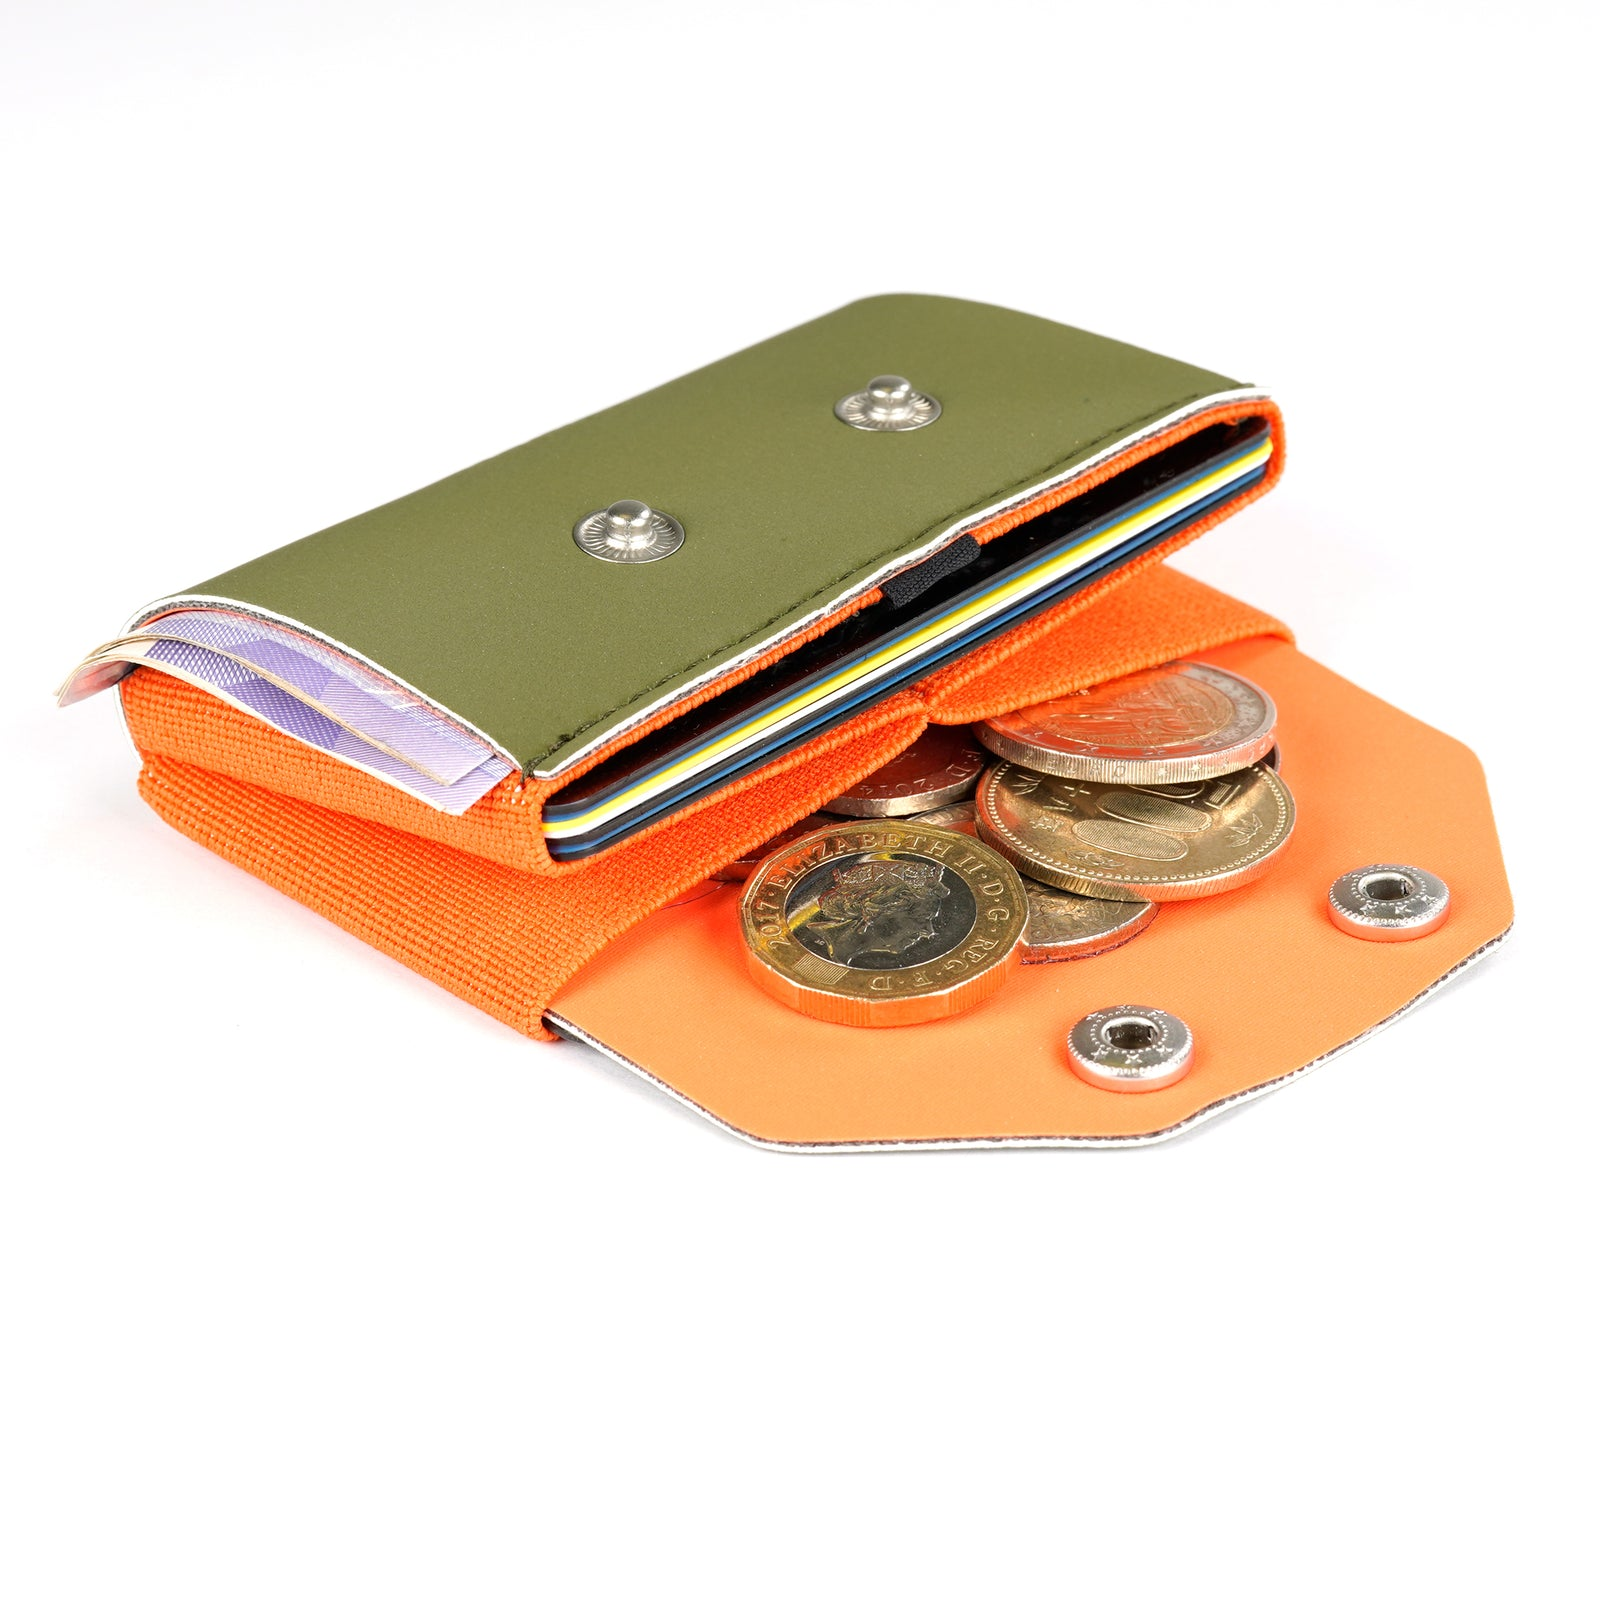 TROVE Coin Caddy: Khaki Reflex